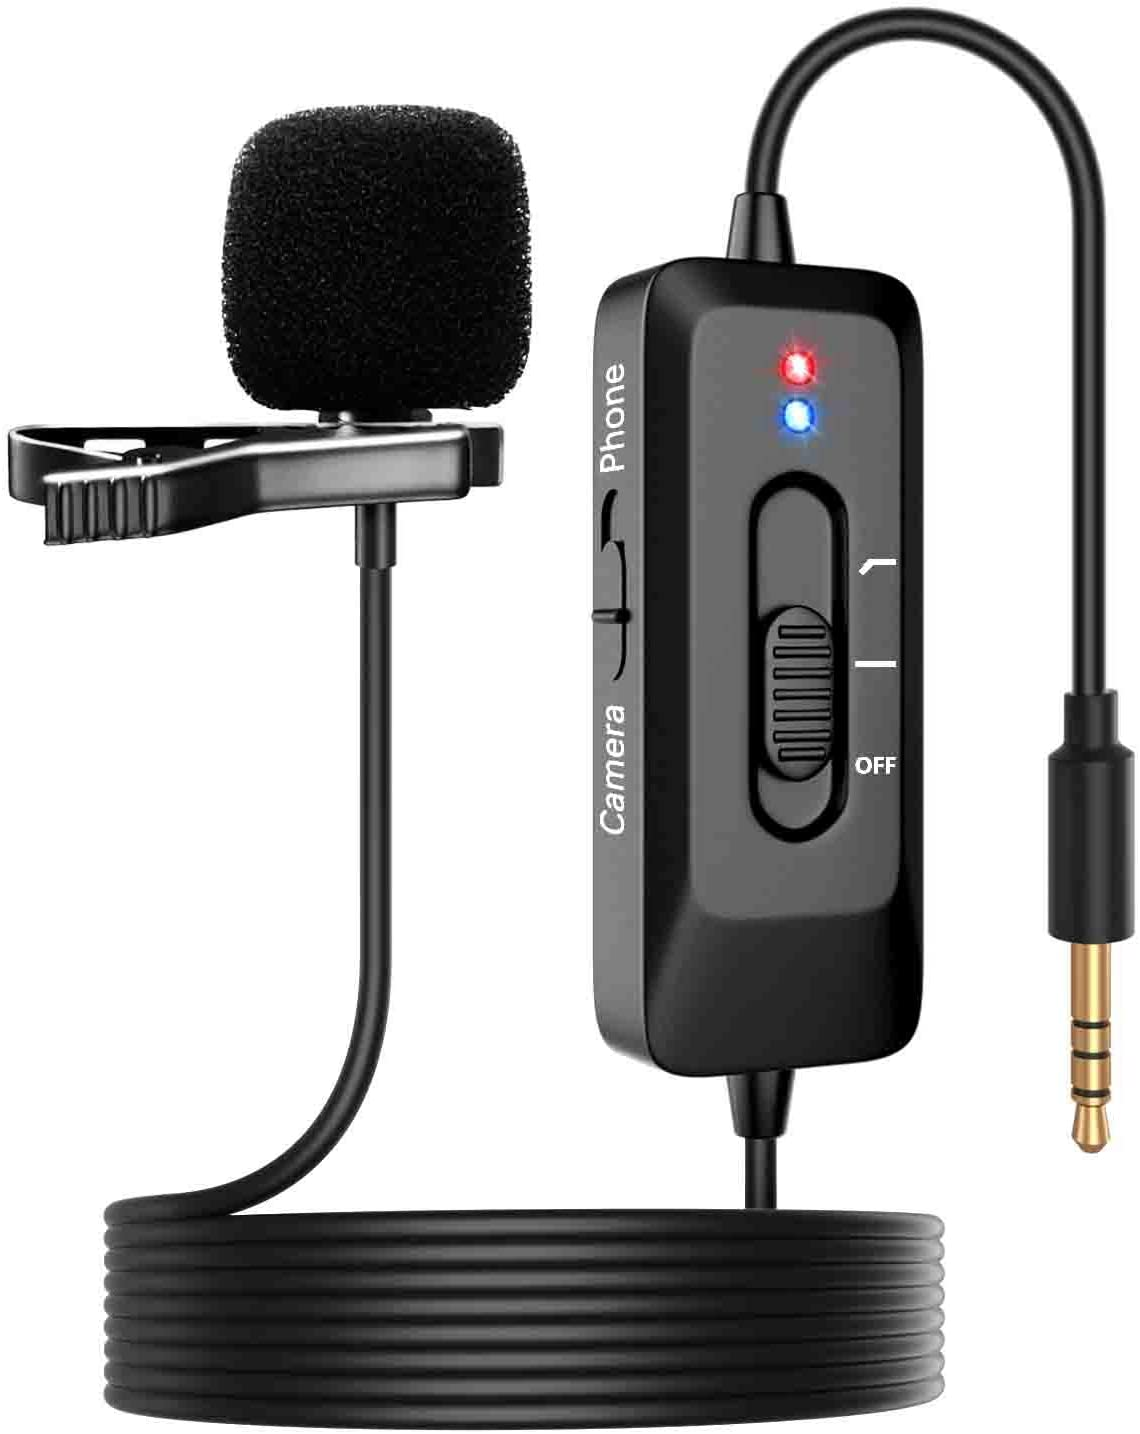 Professional Lavalier Lapel Microphone, NIKOEO Omnidirectional Condenser Clip Mic with Noise Cancellation, USB Charging Cable and 26ft Cord for Phone, Camera, Computer for Recording, Interview, Video